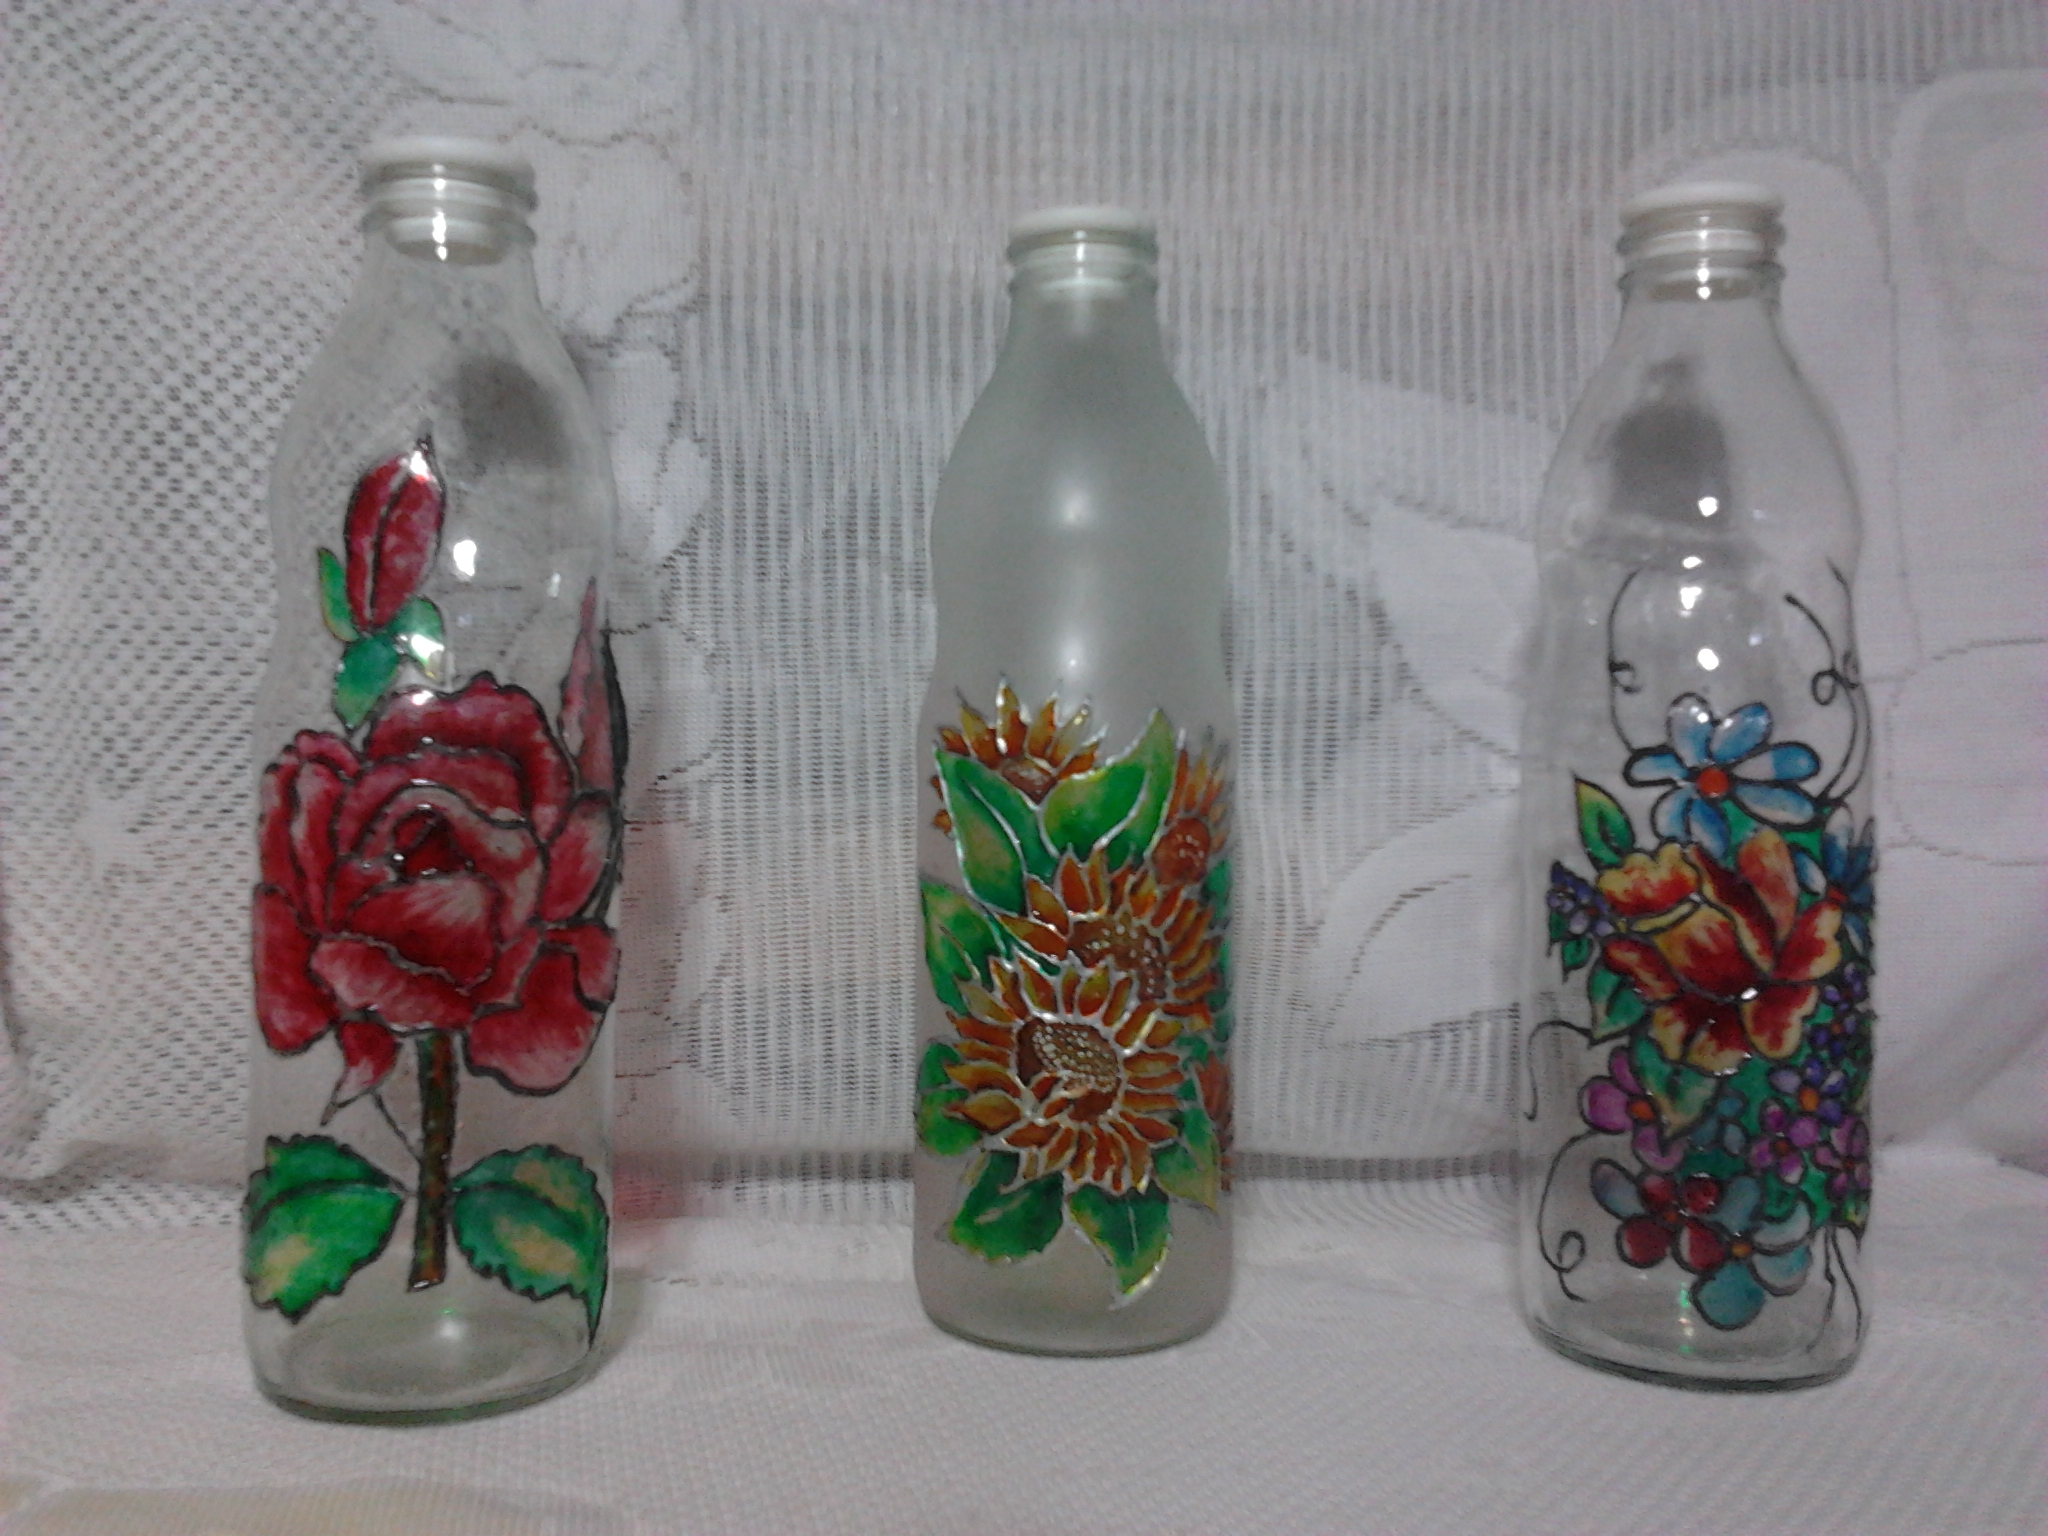 Botellas De Vidrio Decoradas Con Hilo